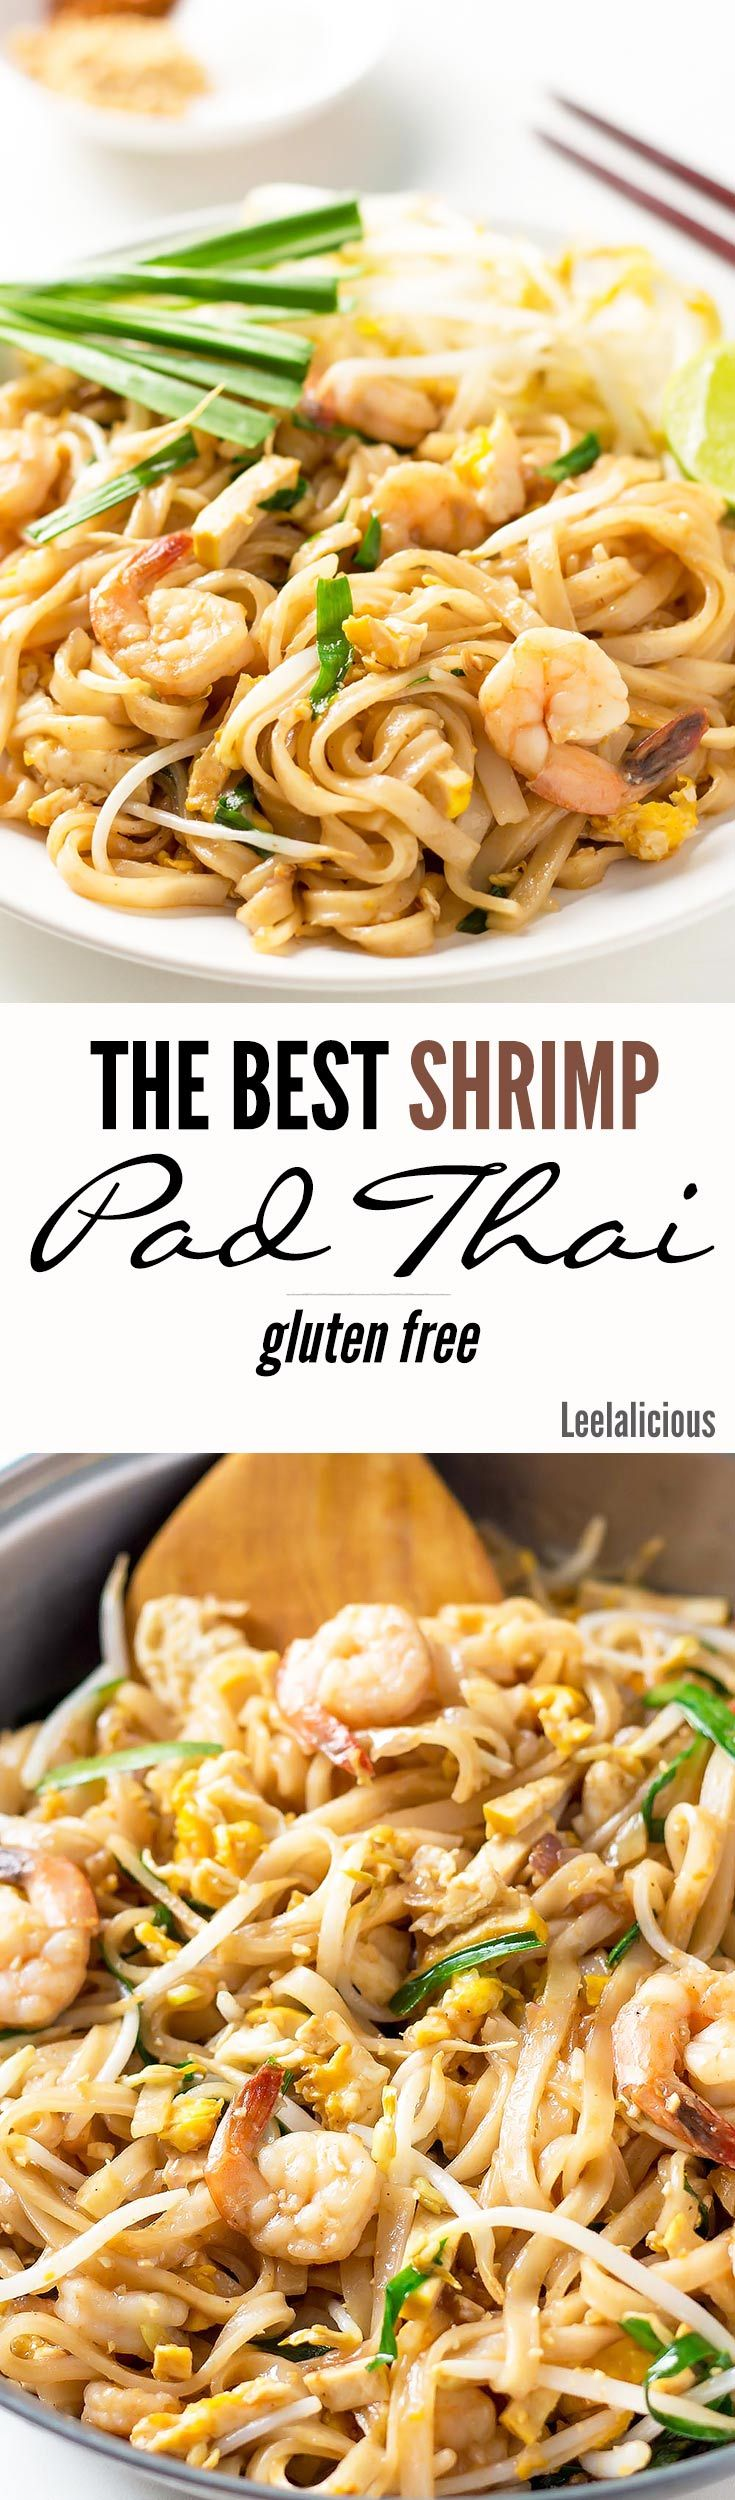 This is THE BEST Shrimp Pad Thai Recipe! I learnt it in a cooking class in Chiang Mai. The gluten free noodle stir fry tastes just as amazing as on the streets of Thailand.